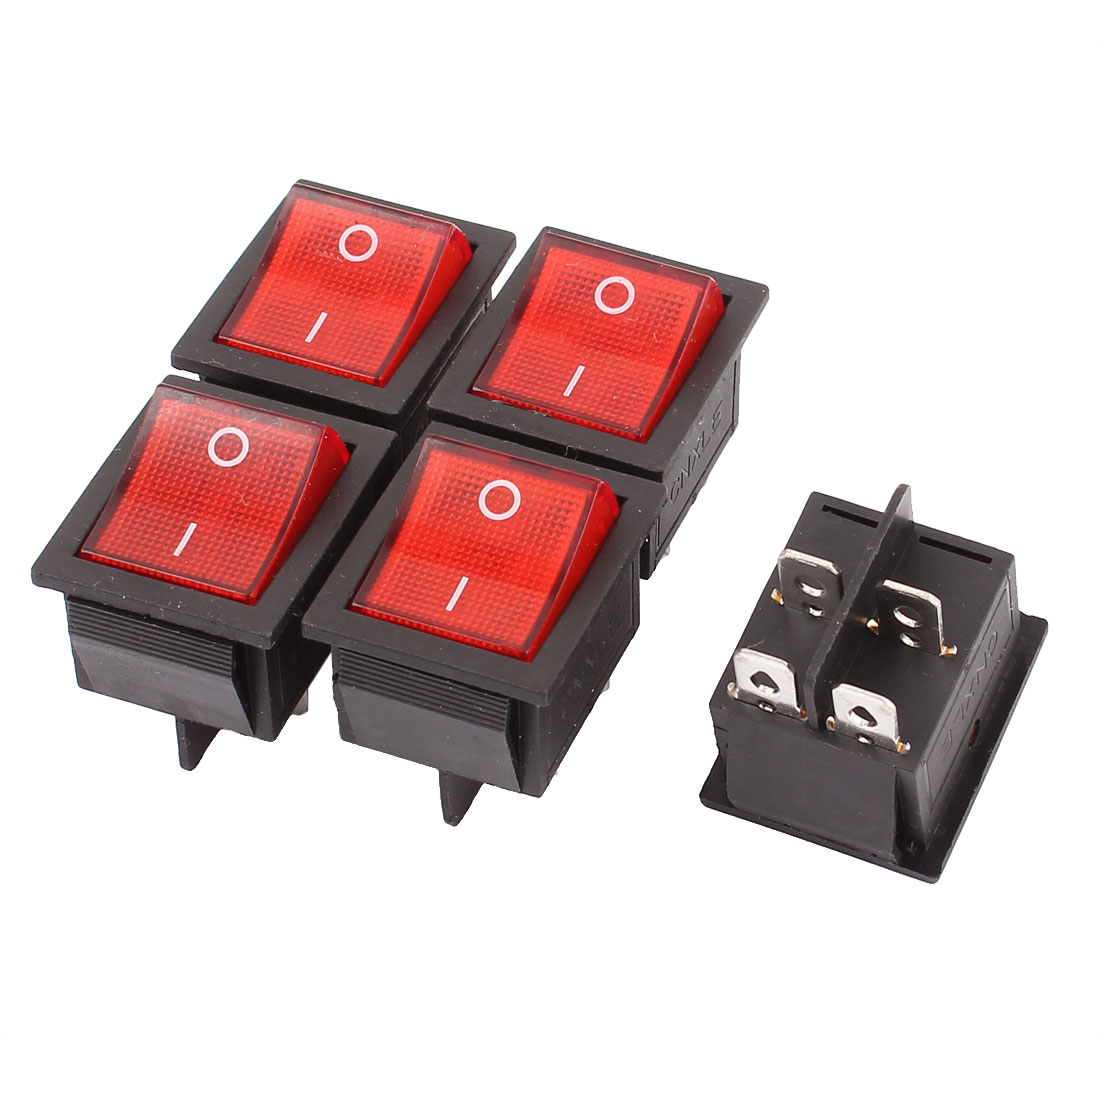 AC 15A/250V 20A/125V 4 Pin 2 Position On-Off SPST Red Lamp Rocker Switch 5PCS